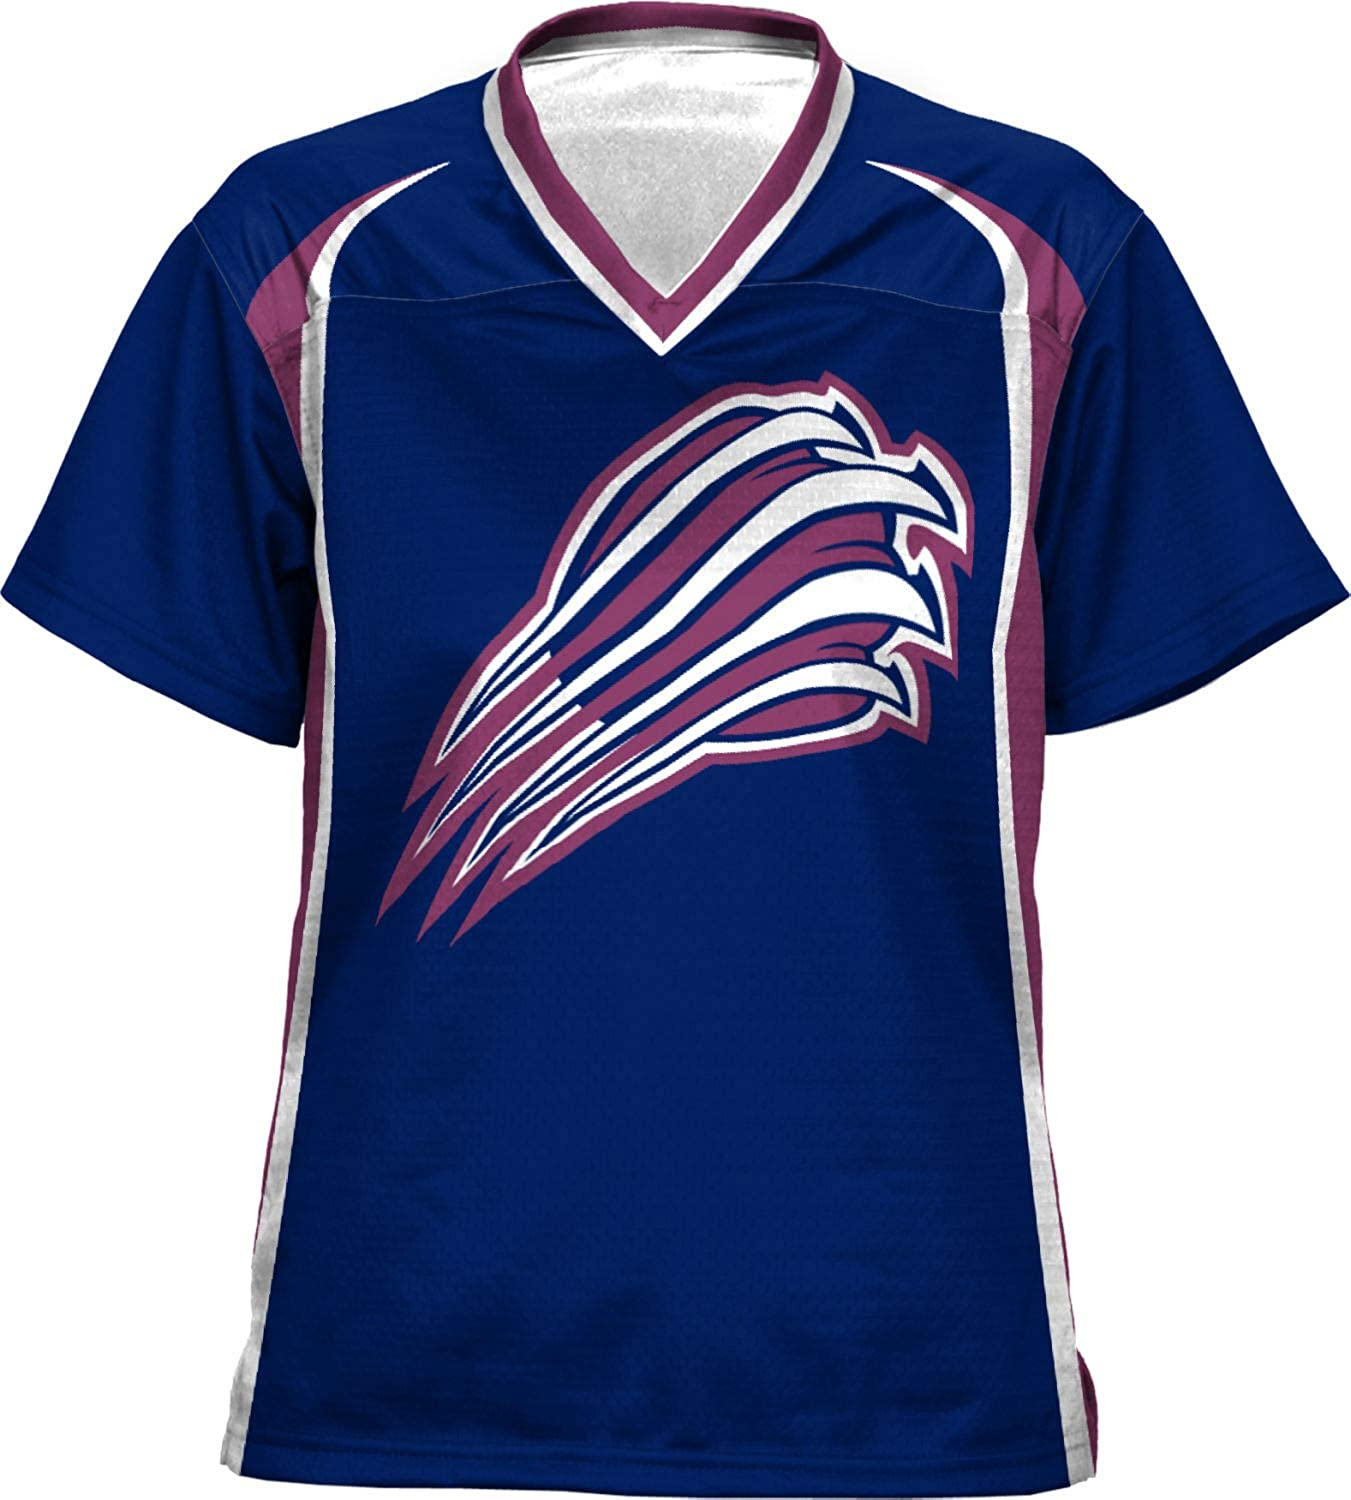 ProSphere Cherokee OFFicial shop Trail High School Football Jersey Wholesale Girls' Wil